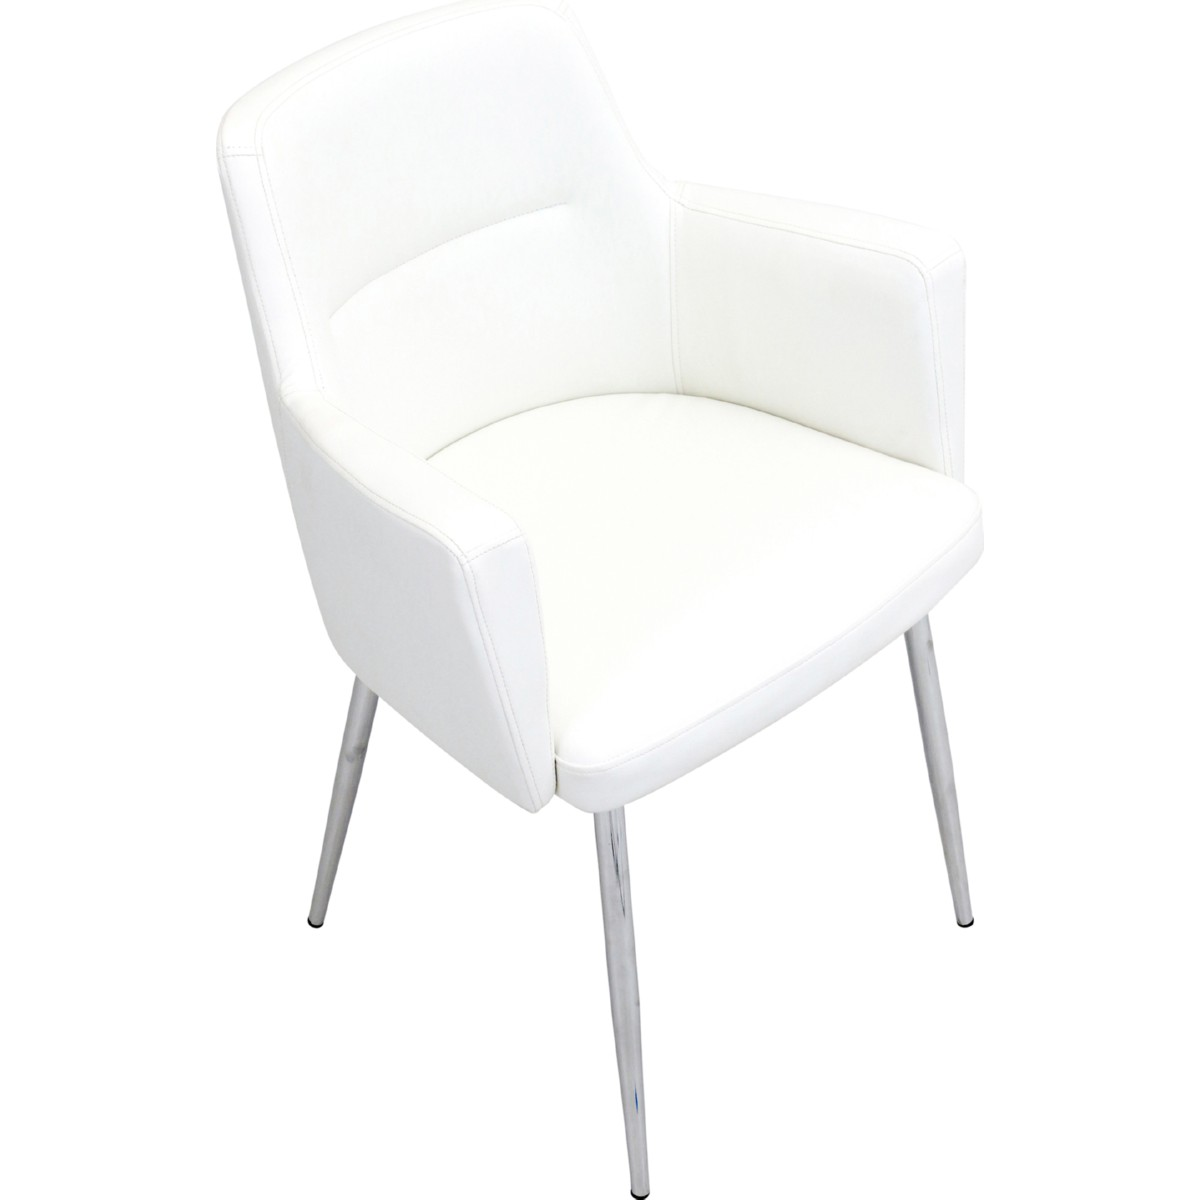 Eggshell Chair Andrew Accent Chairs In Chrome W Eggshell Leatherette Set Of 2 By Lumisource